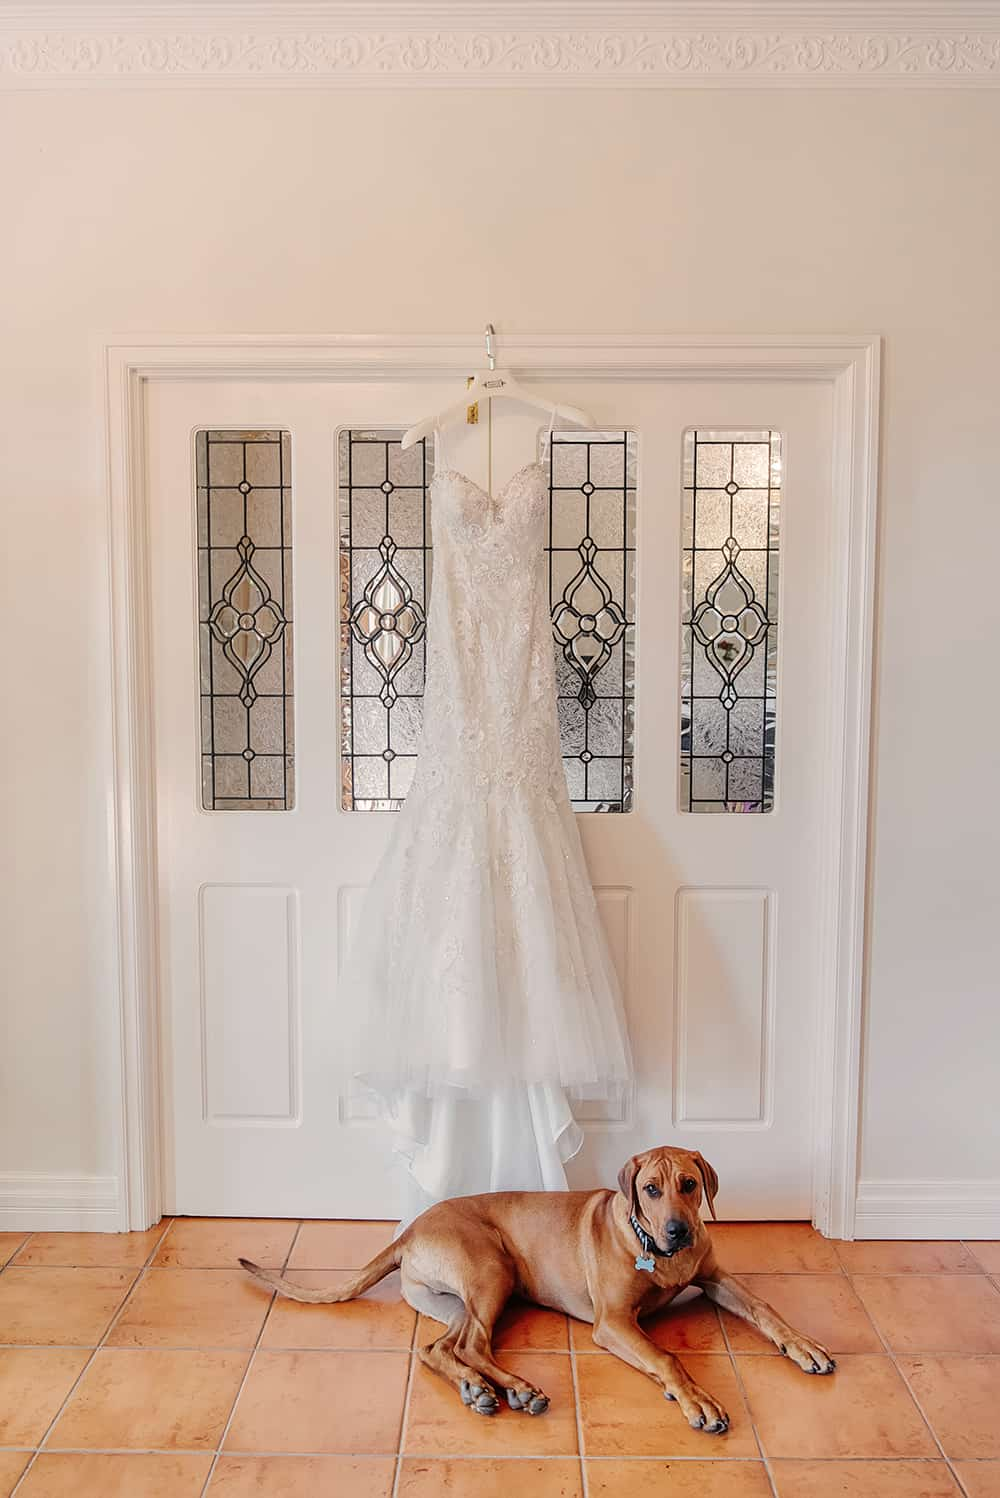 Party animals: dog and his brides dress.